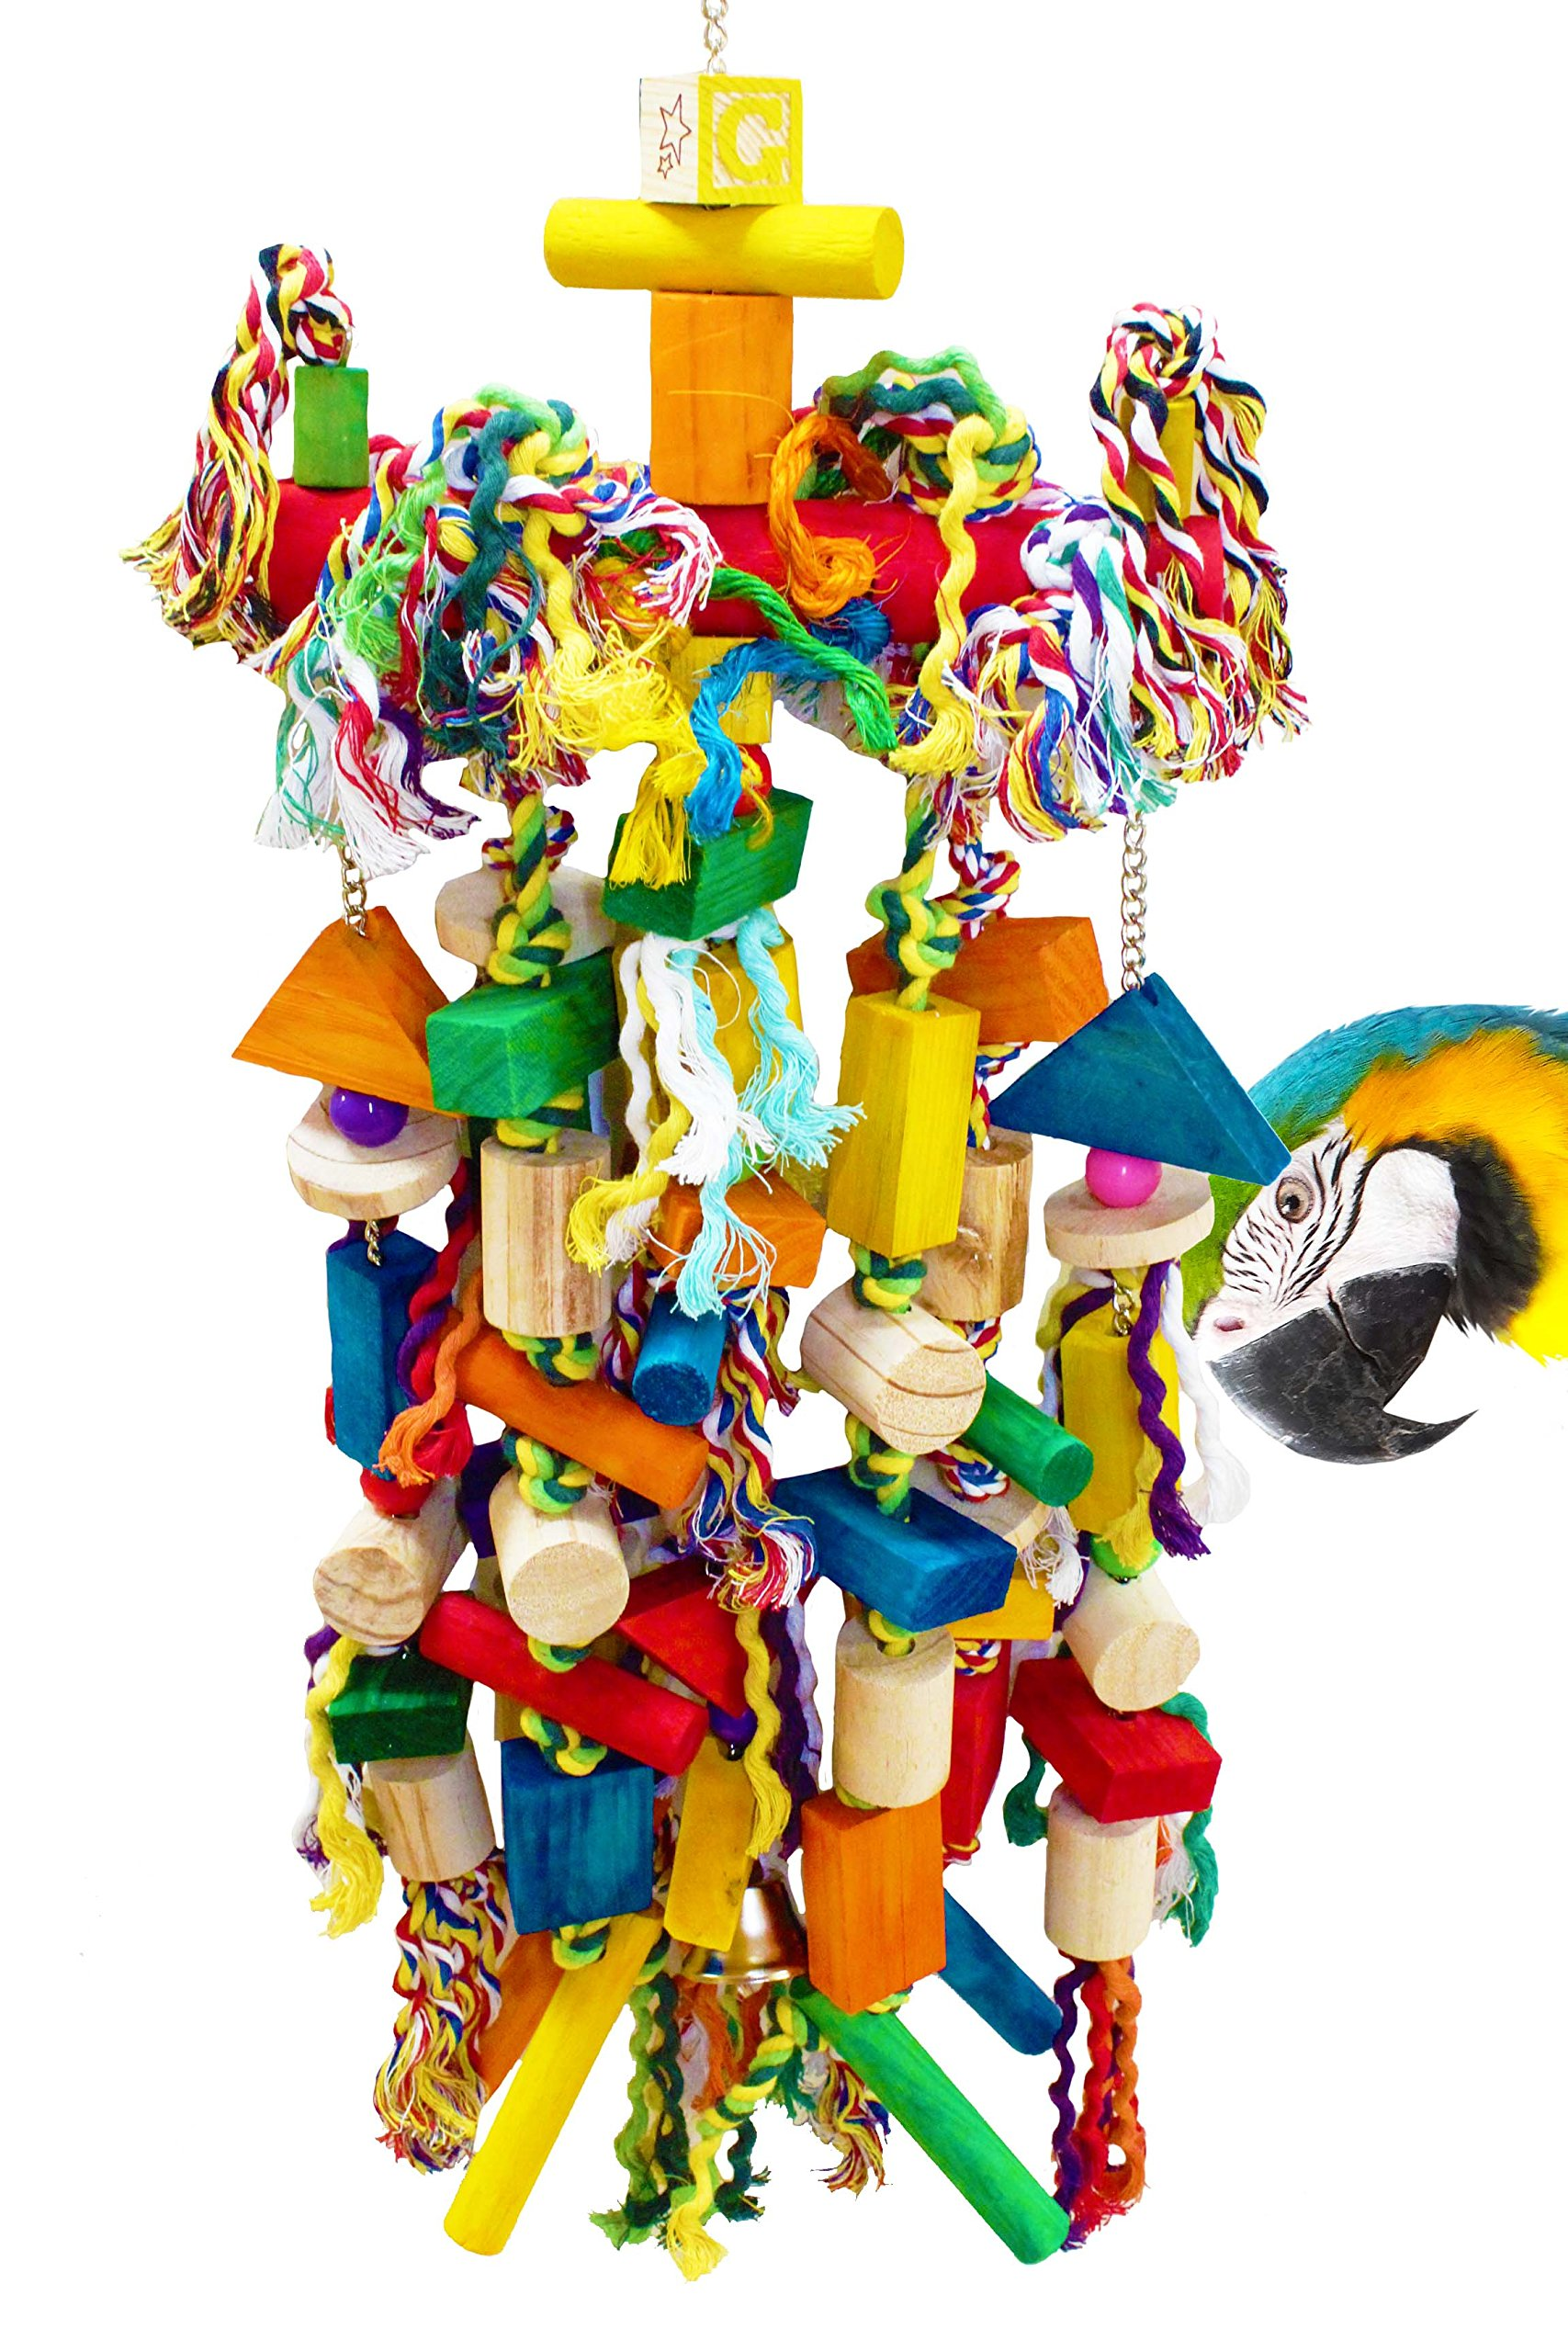 Bonka Bird Toys 1093 Huge Raggedy Cage Cages Toy Chewy Amazon Macaw Cockatoo by Bonka Bird Toys